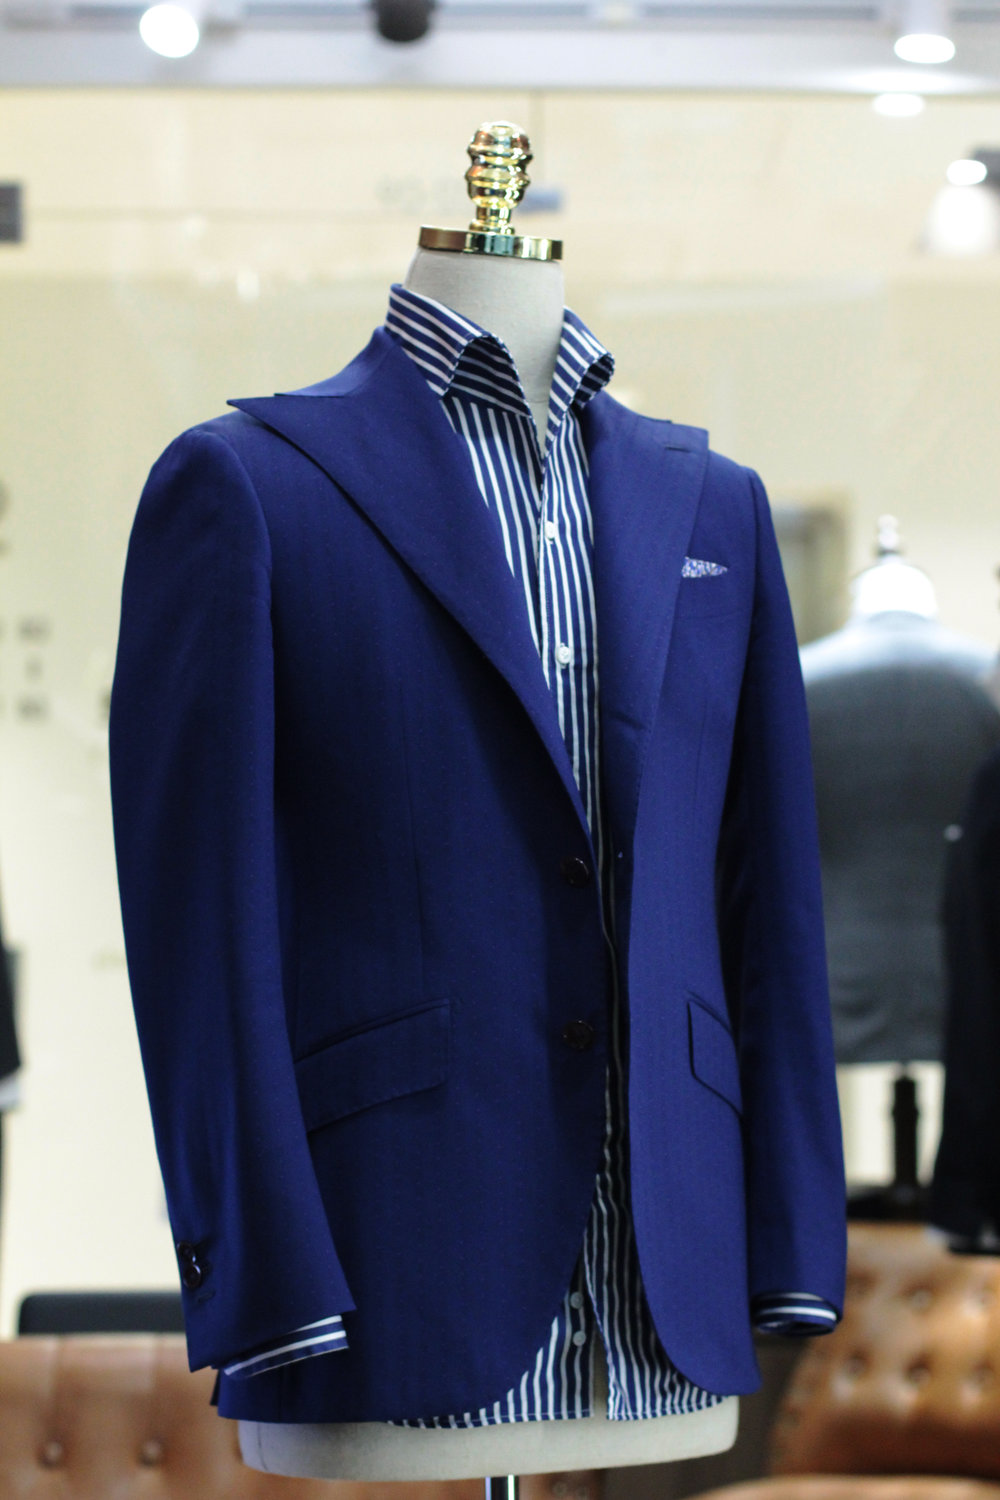 Made Suits Blue moon Peak Sparrow Lapel Suit Stylbiella Made to Measure Suit 1.JPG